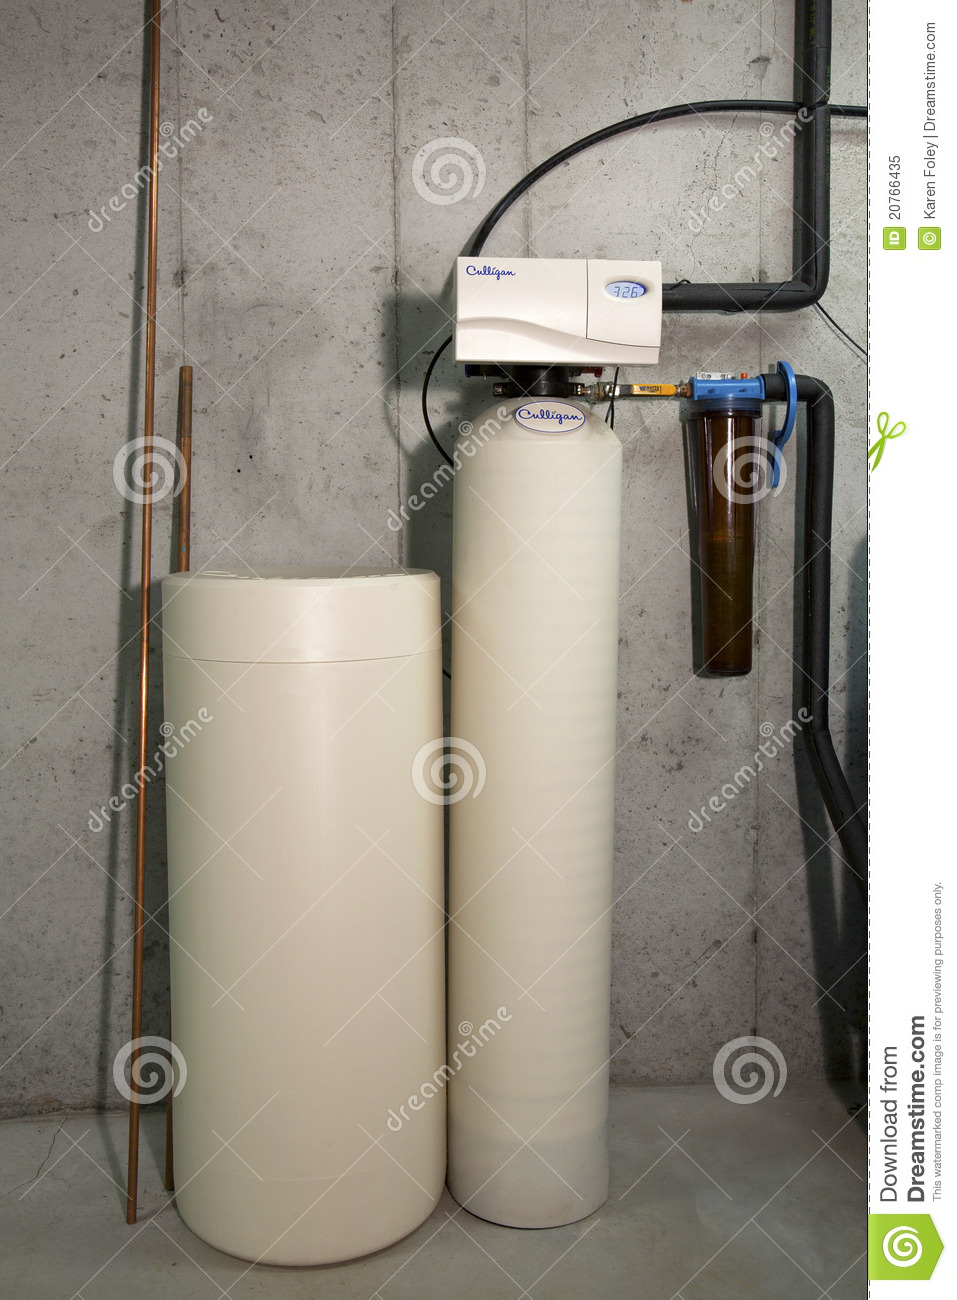 Water Softener Price Culligan Water Softener Editorial Image Image Of Tank 20766435